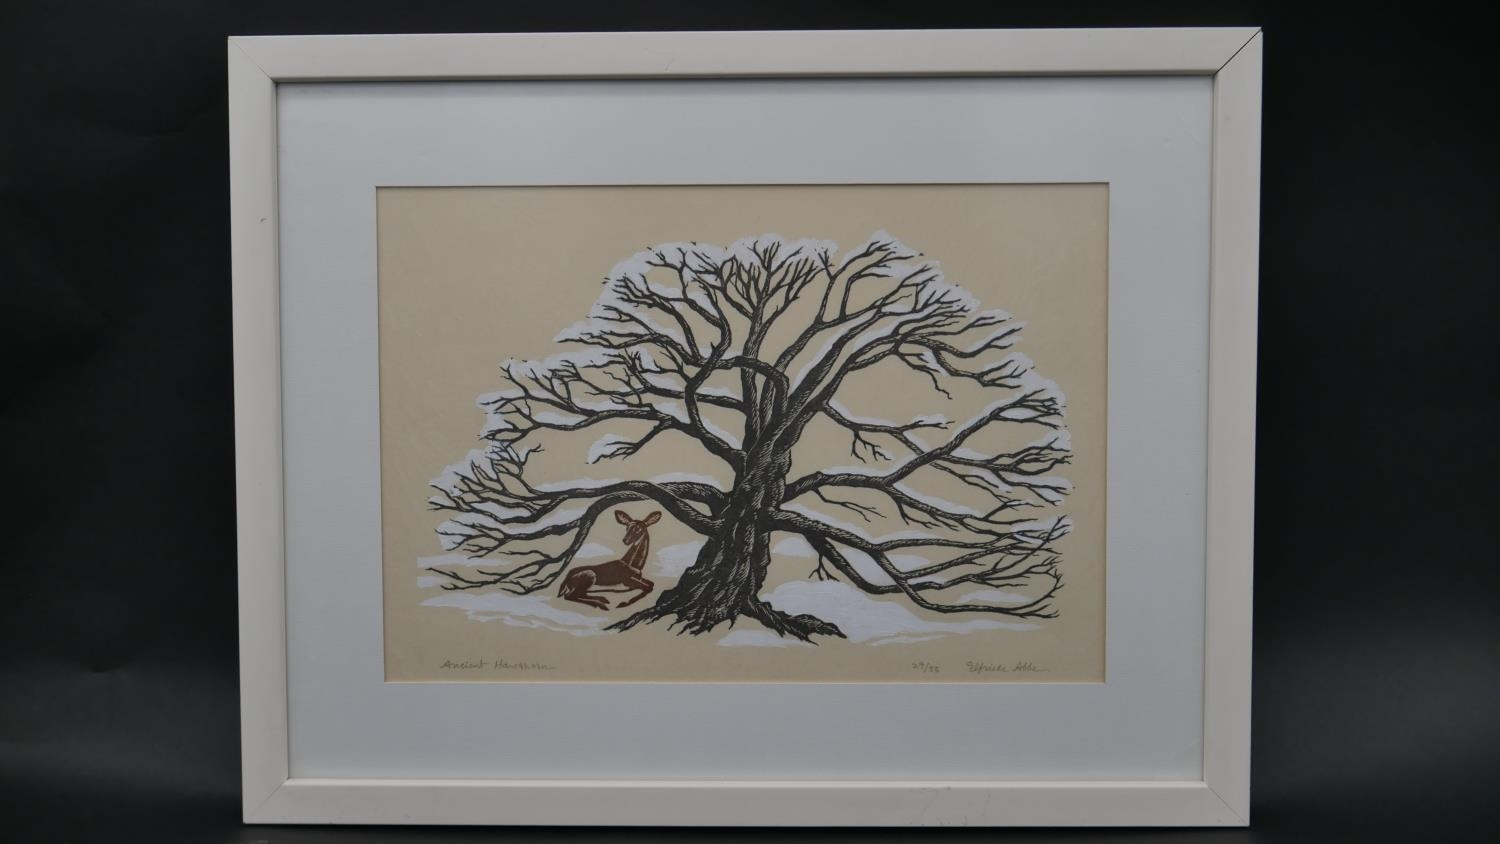 Elfriede Martha Abbe (1919-2012), a signed limited edition woodblock print 29/55, Ancient - Image 2 of 6